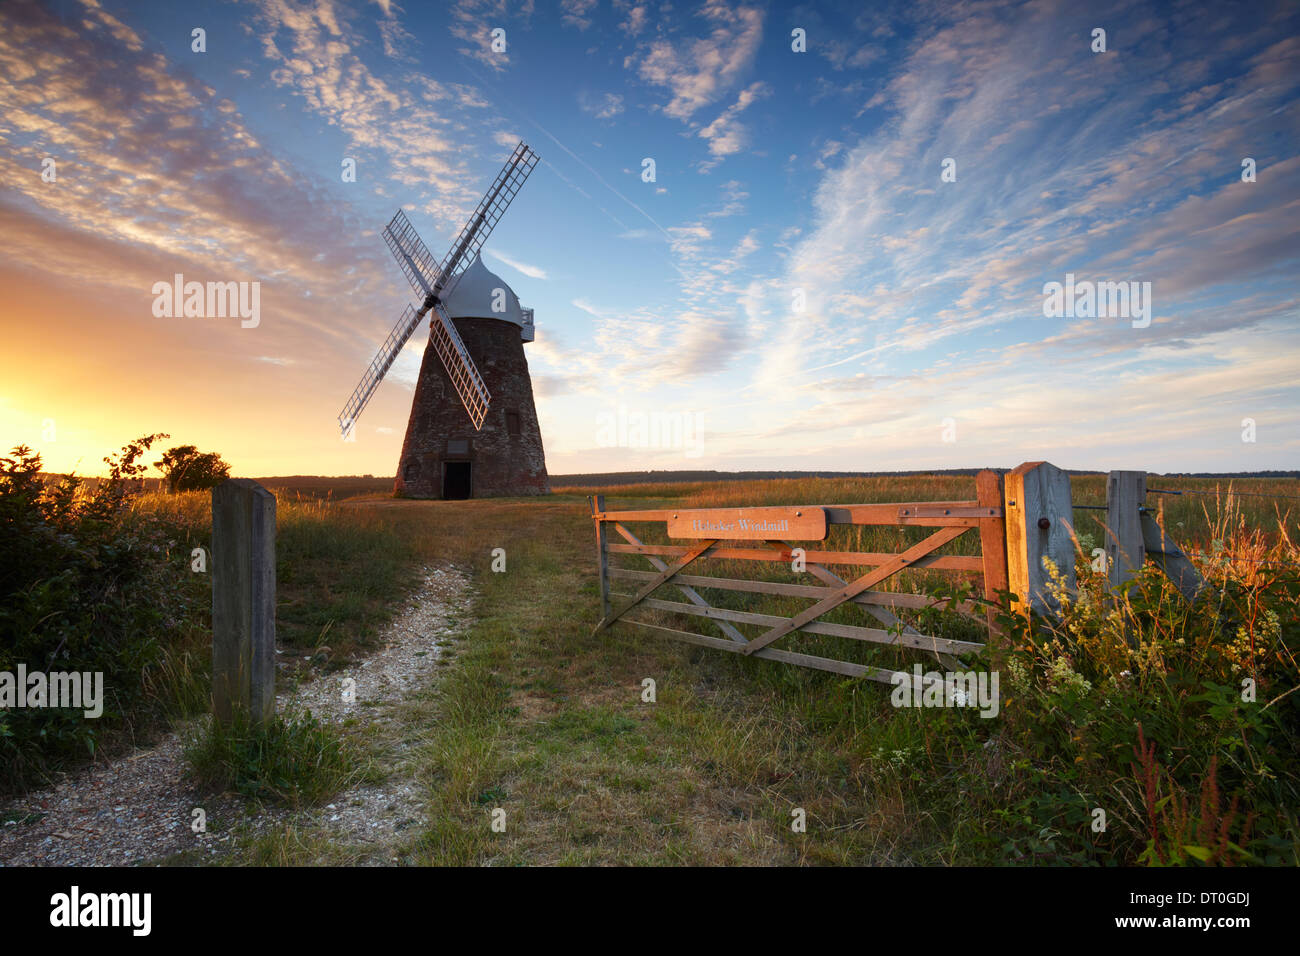 A beautiful summers evening at Halnaker windmill. Located high up on a hilltop on the South Downs National Park - Stock Image